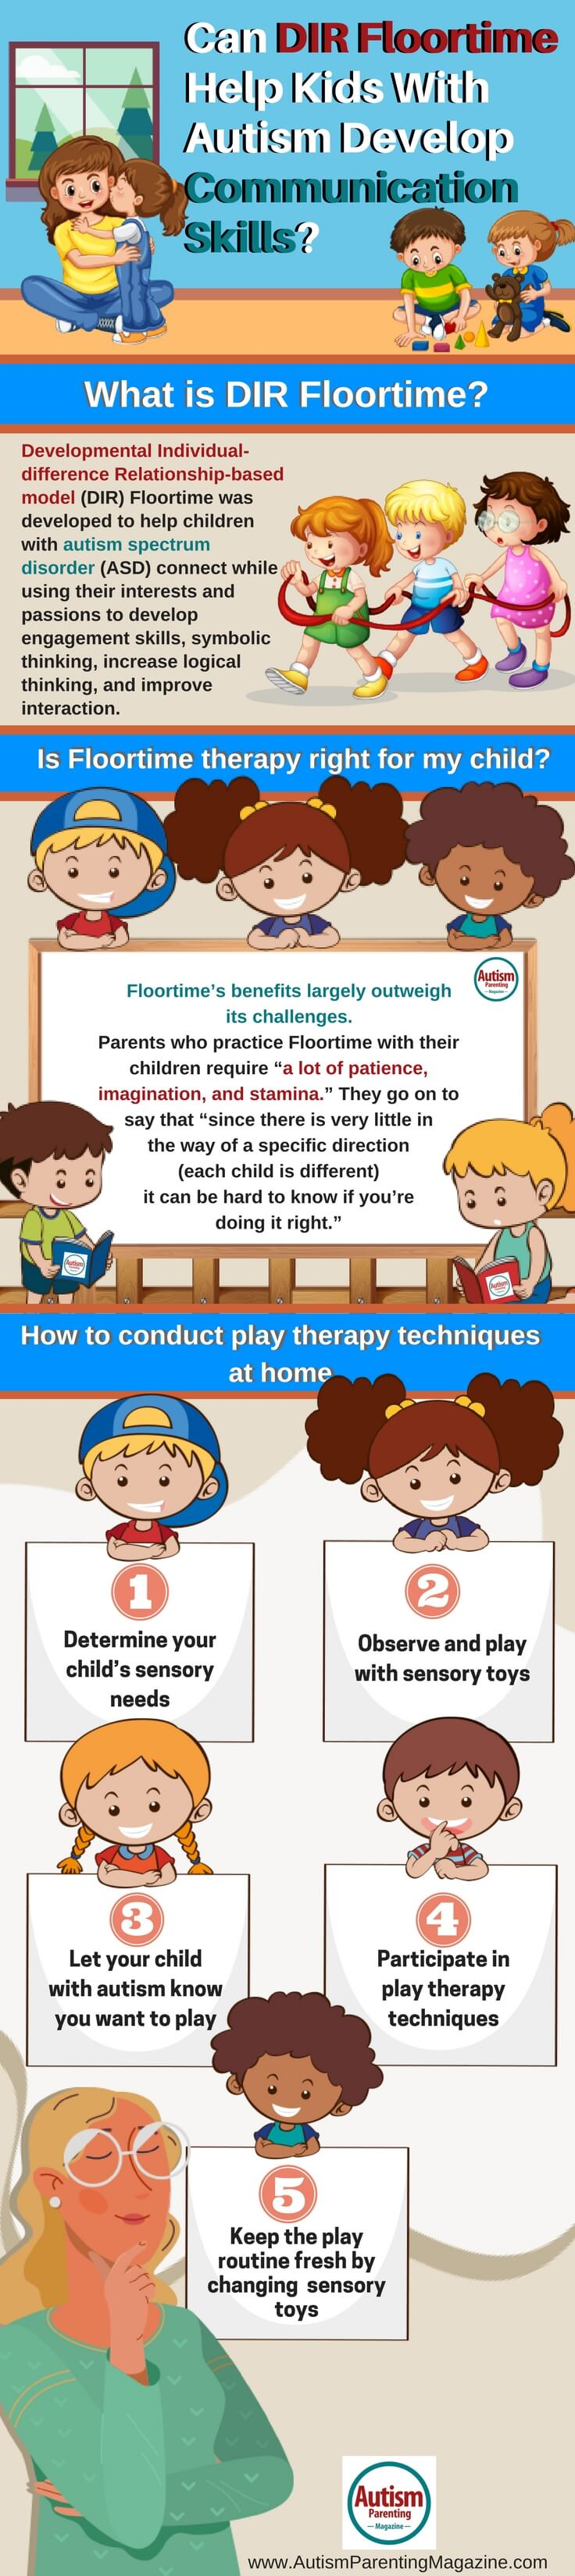 Download our Free Guide - Can DIR Floortime Help Kids With Autism Develop Communication Skills? https://www.autismparentingmagazine.com/floortime-therapy/